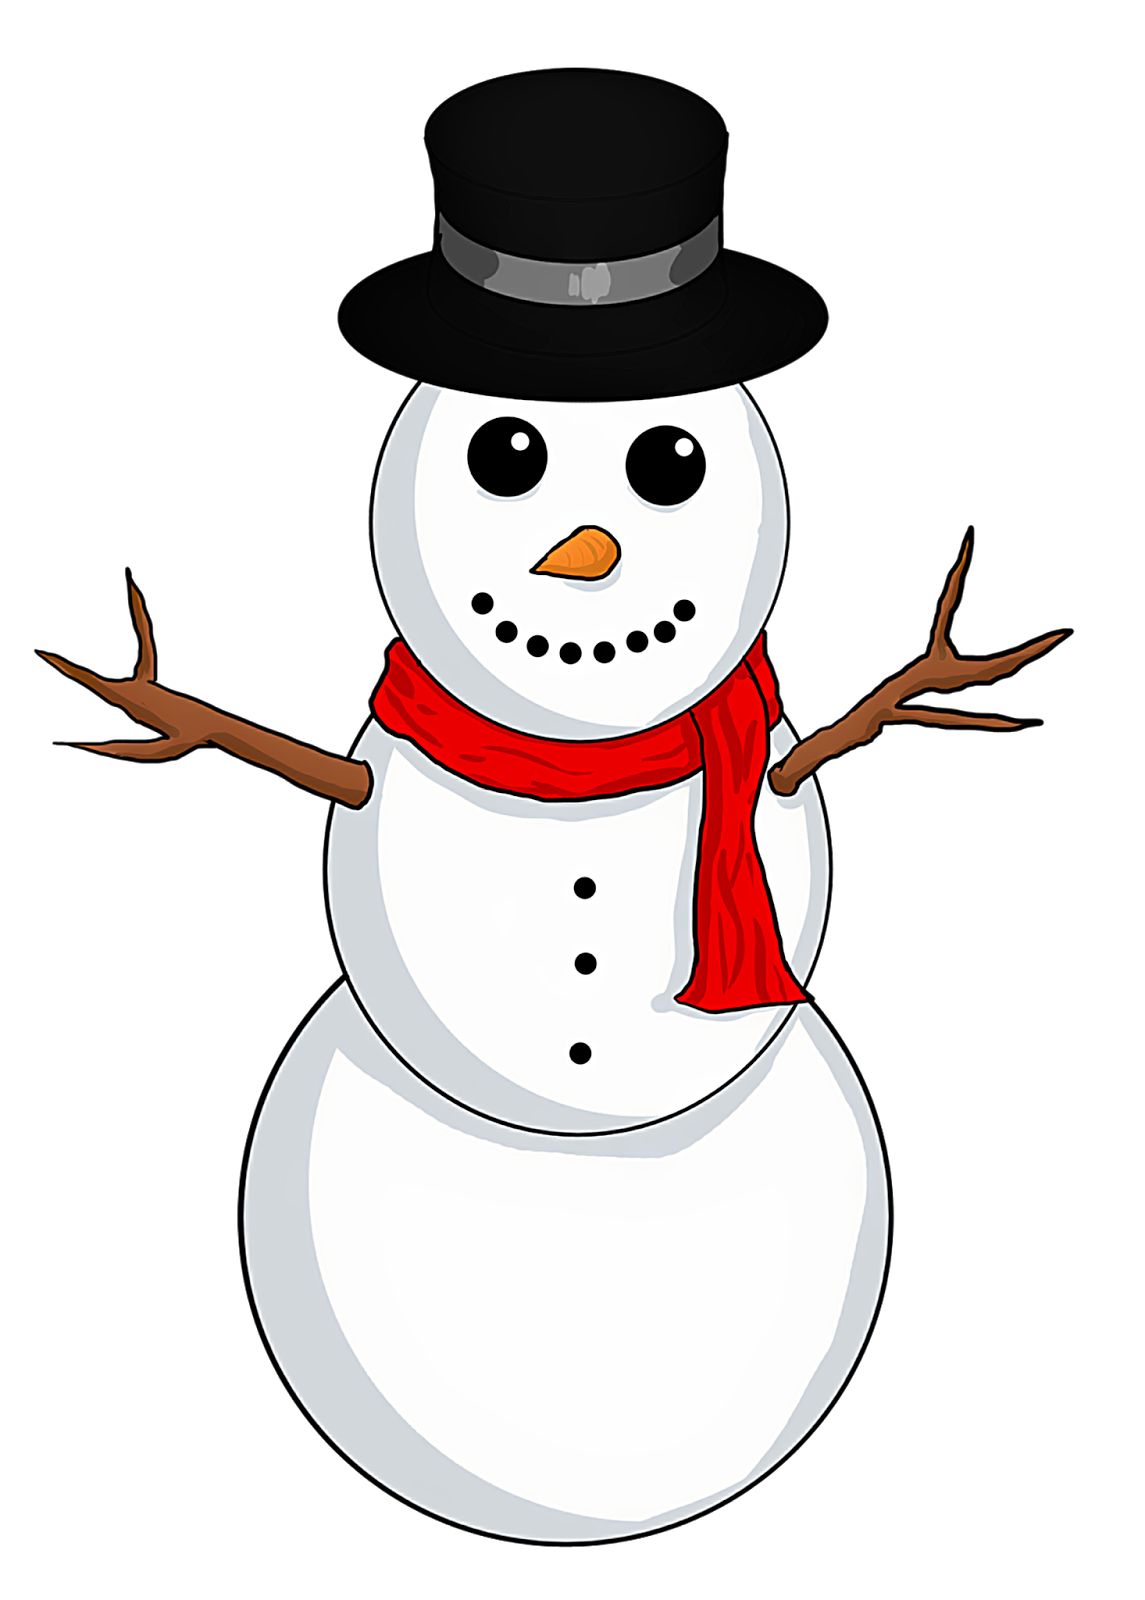 Hat svg snow man. Snowman clipart free download